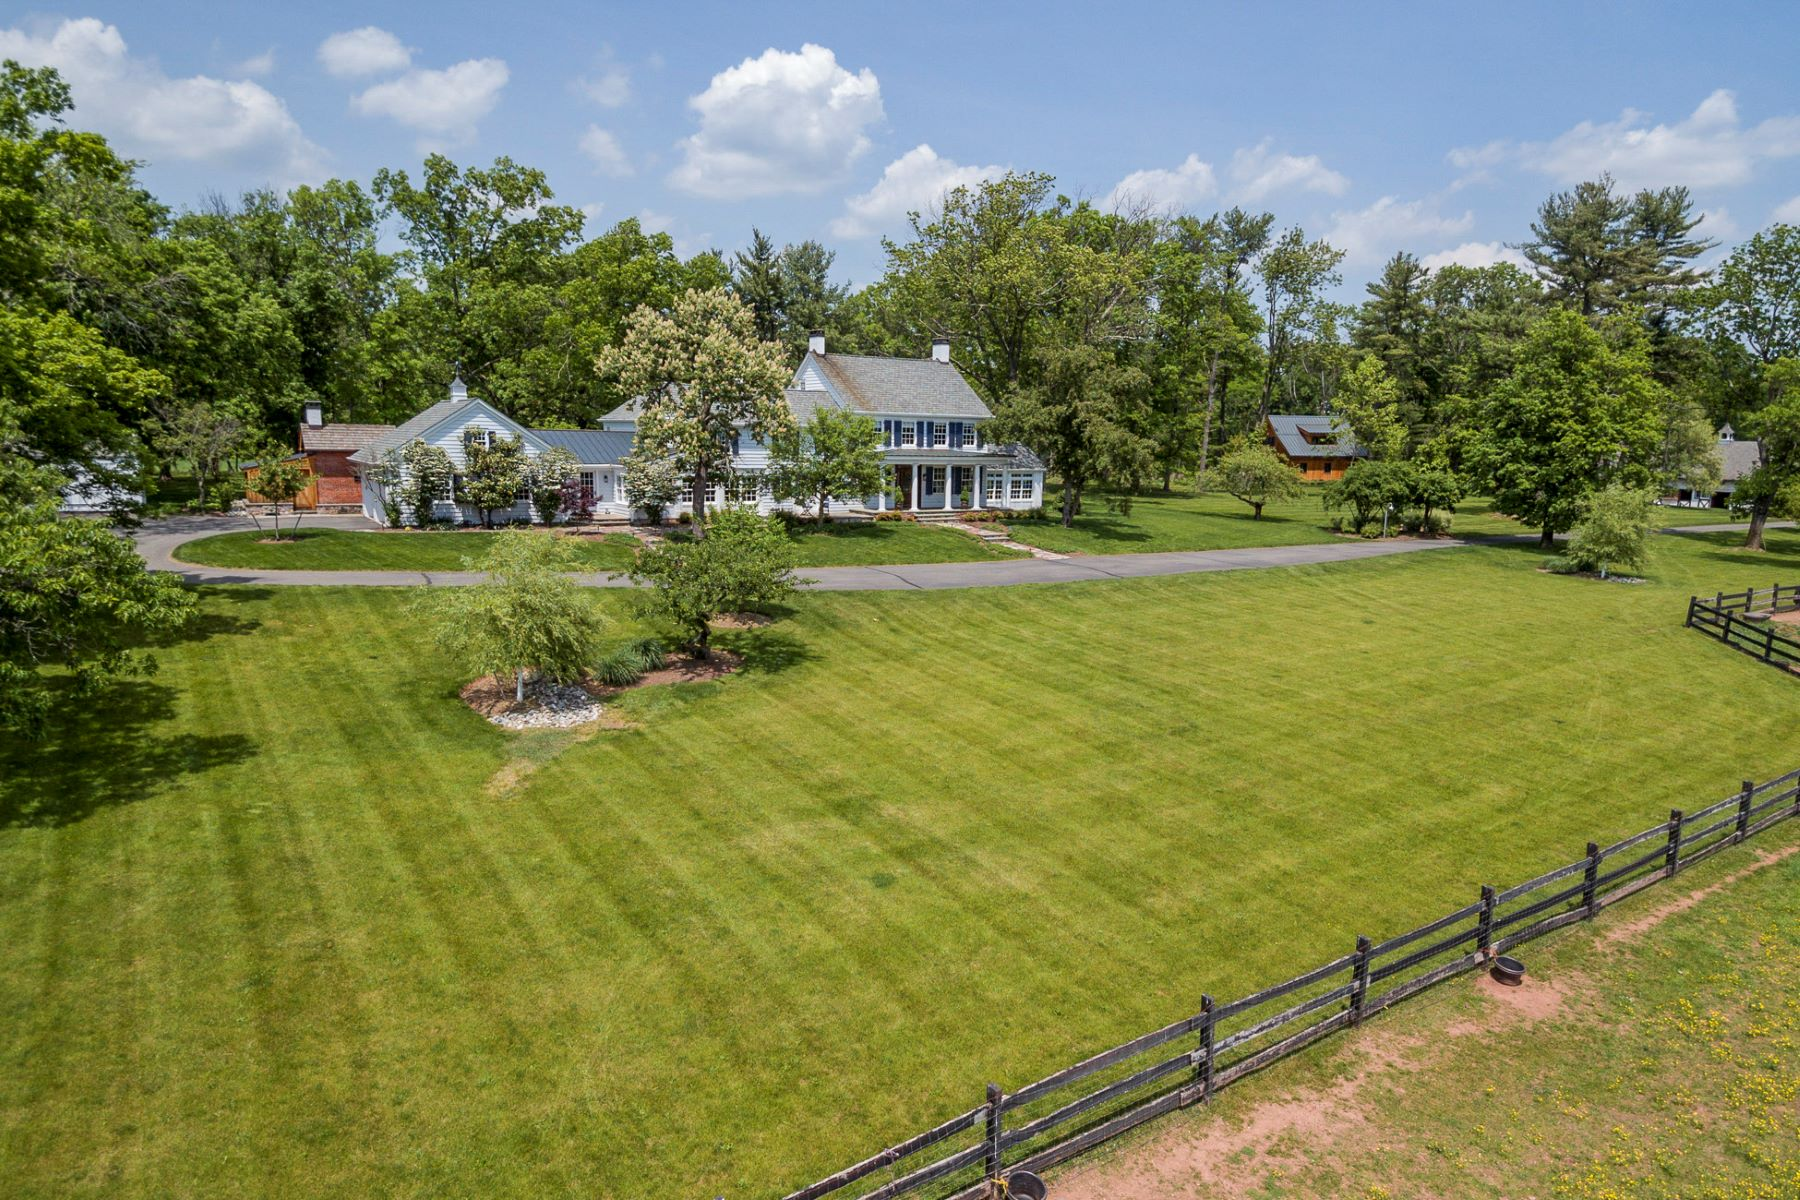 Property por un Venta en Historic Farm Reimagined for the Modern Equestrian - Hopewell Township 266 Province Line Road, Skillman, Nueva Jersey 08558 Estados Unidos